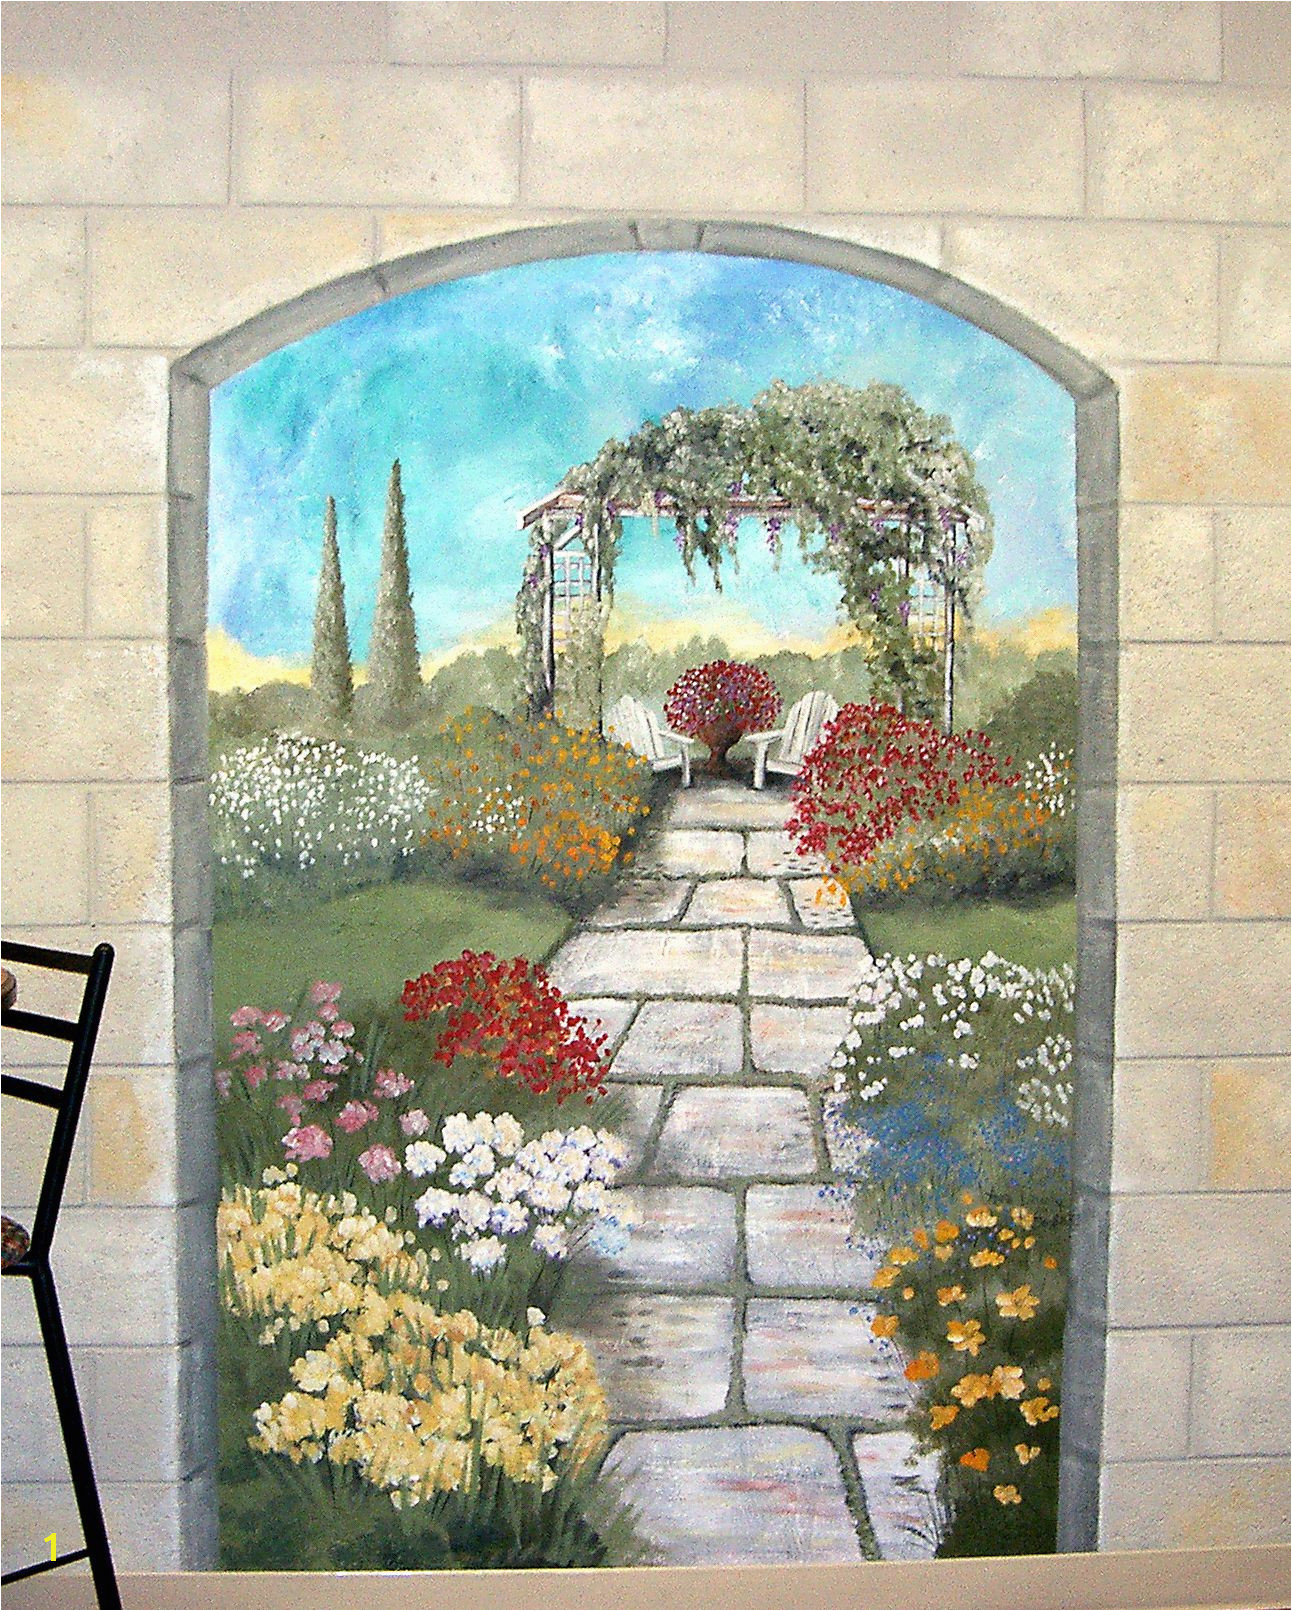 Broken Concrete Wall Mural Garden Mural On A Cement Block Wall Colorful Flower Garden Mural